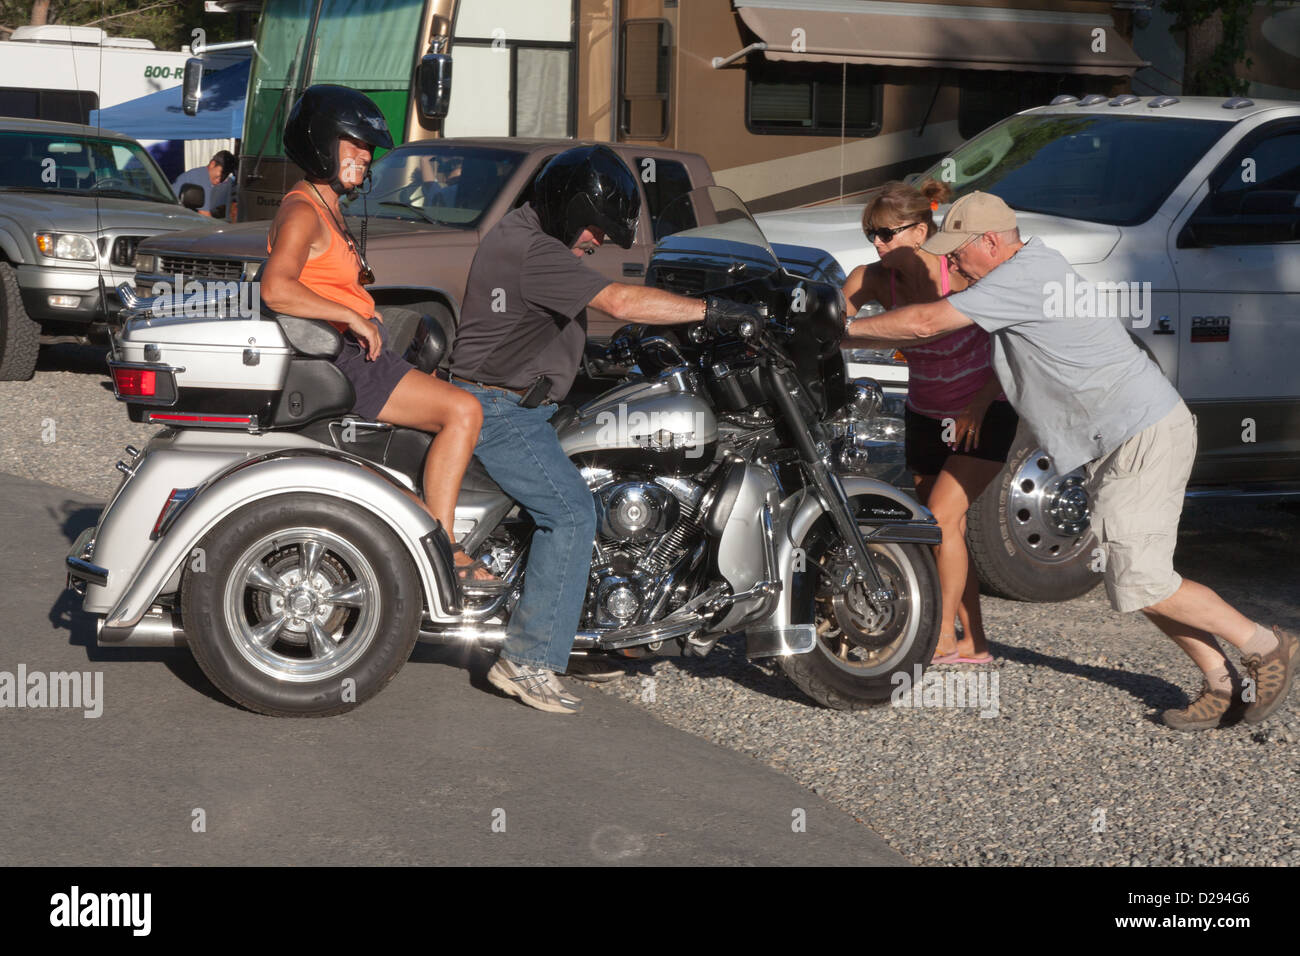 Harley Davidson Trike High Resolution Stock Photography and Images - Alamy